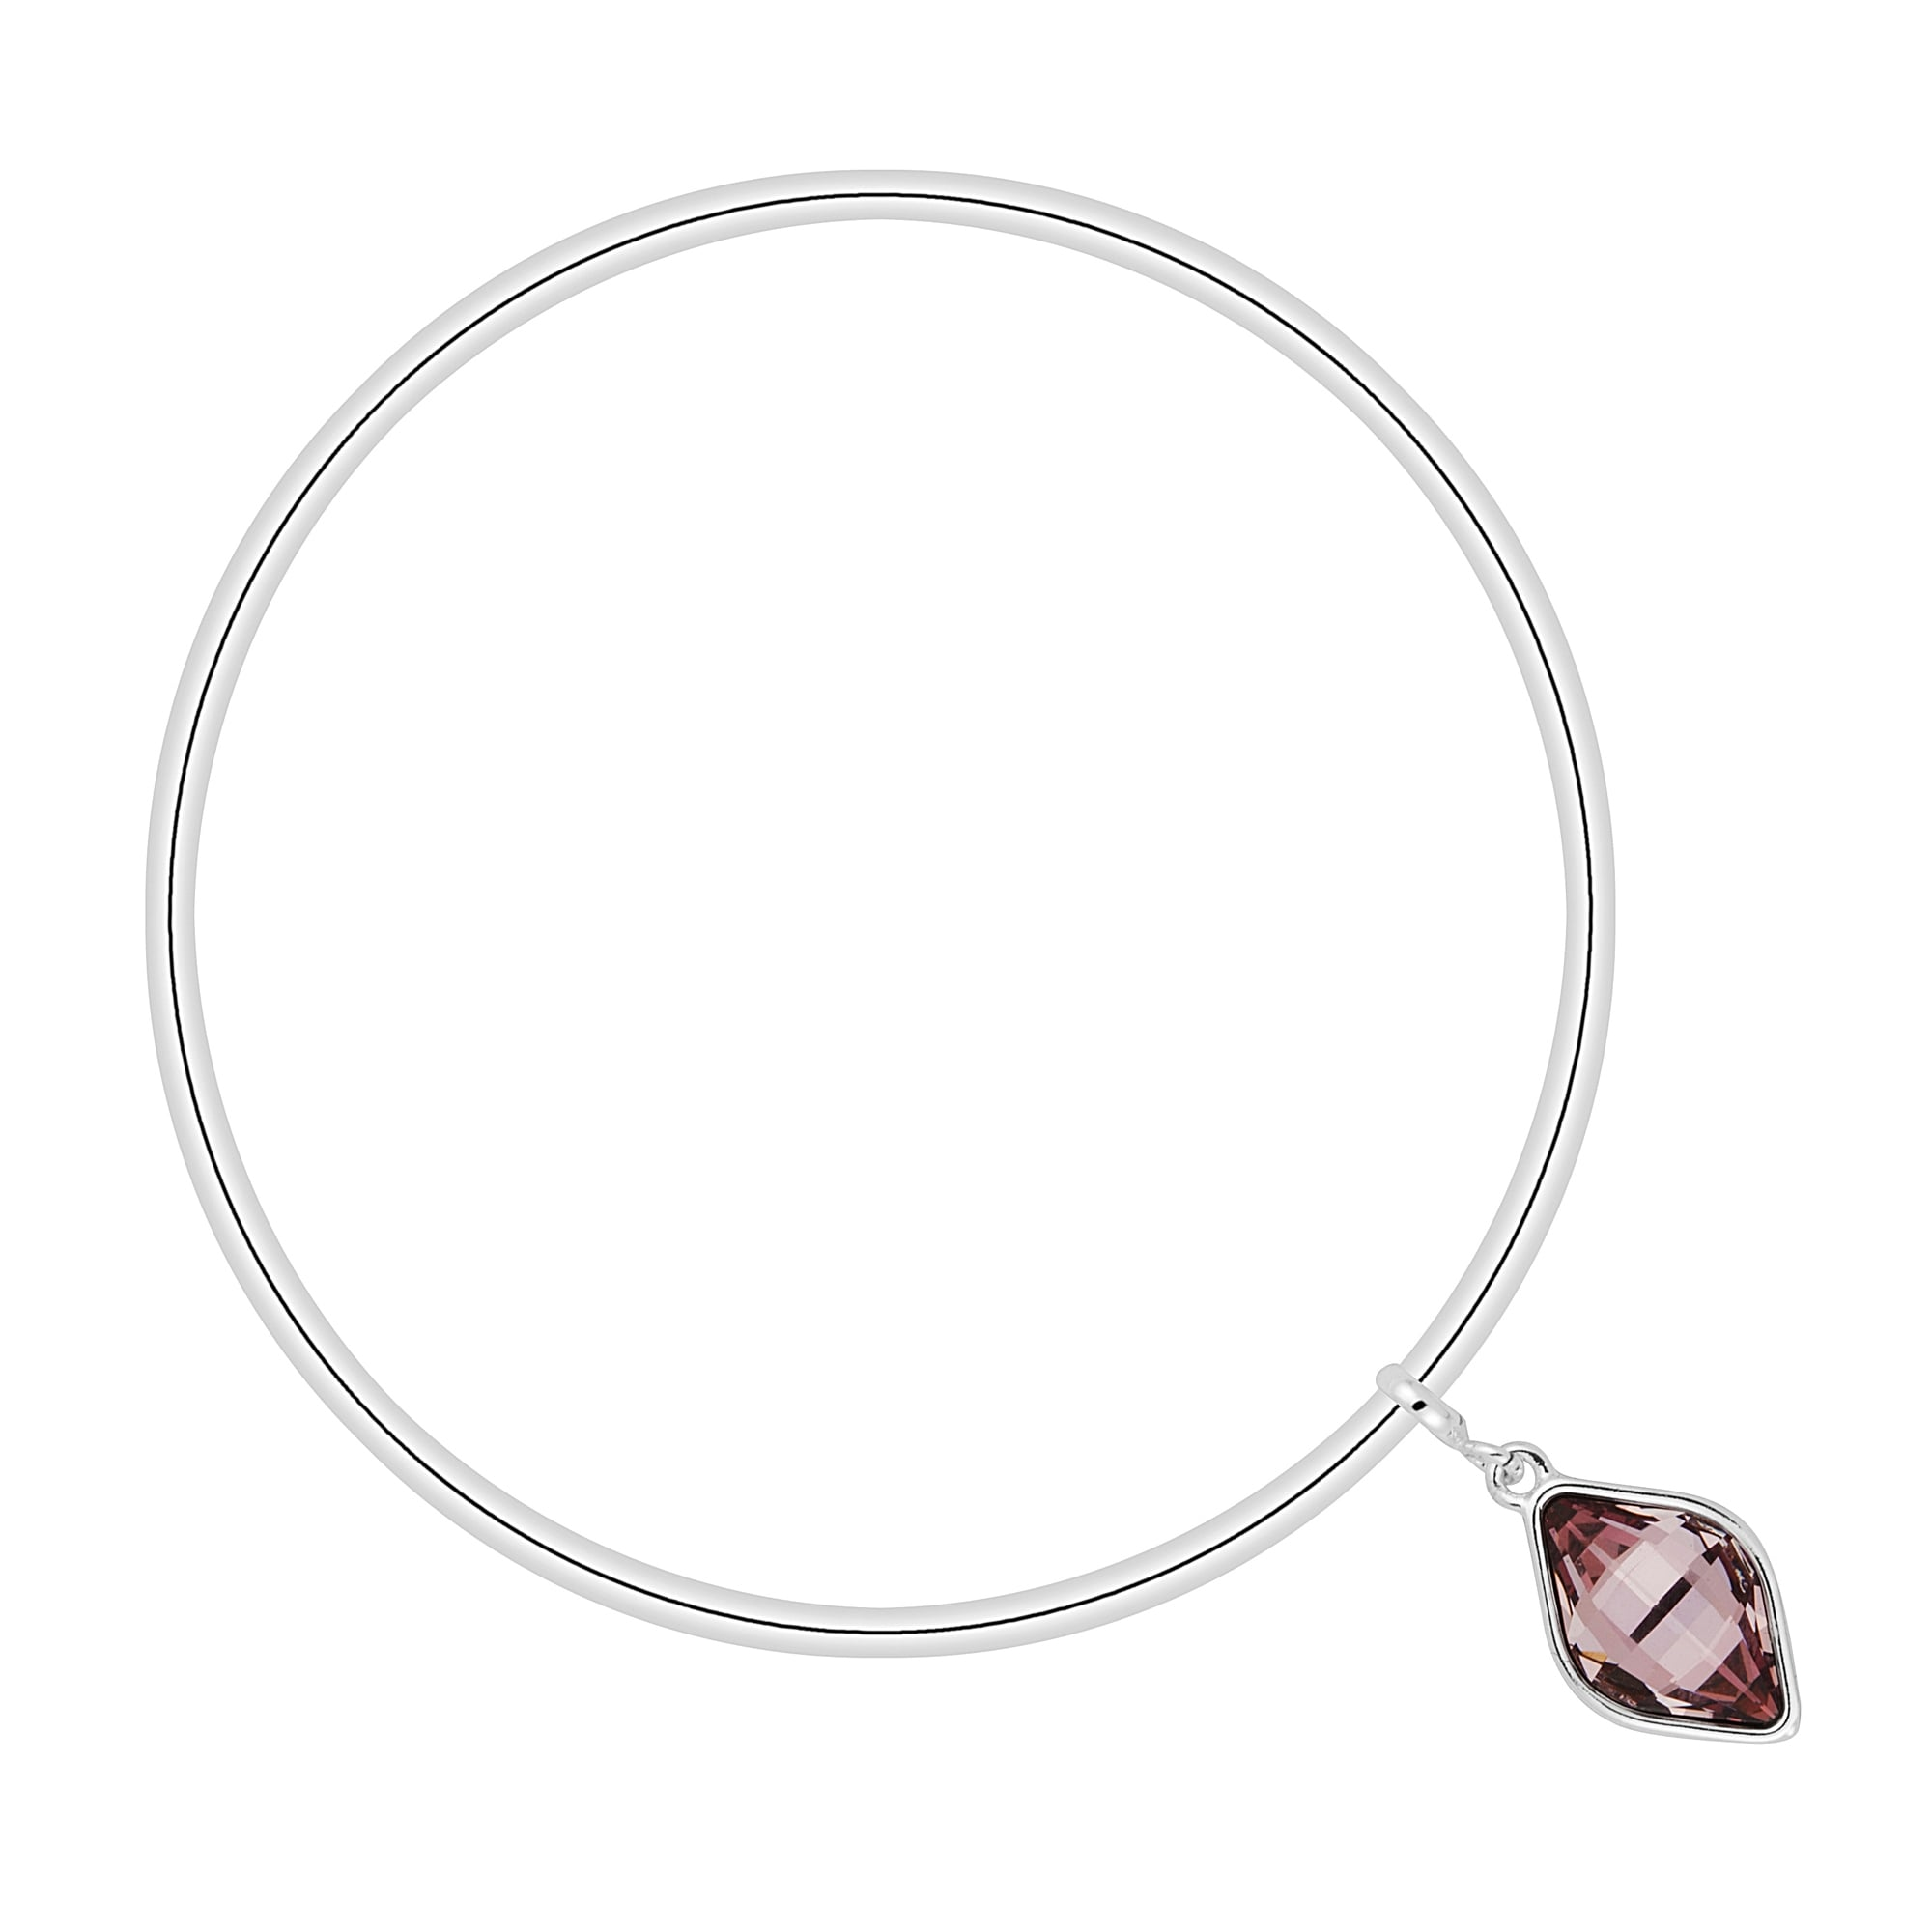 Jon Richard made with Swarovski® crystals Silver Pink Drop Charm Bangle  Embellished With Swarovski® Crystals - Sale from Jon Richard UK 909278408d54